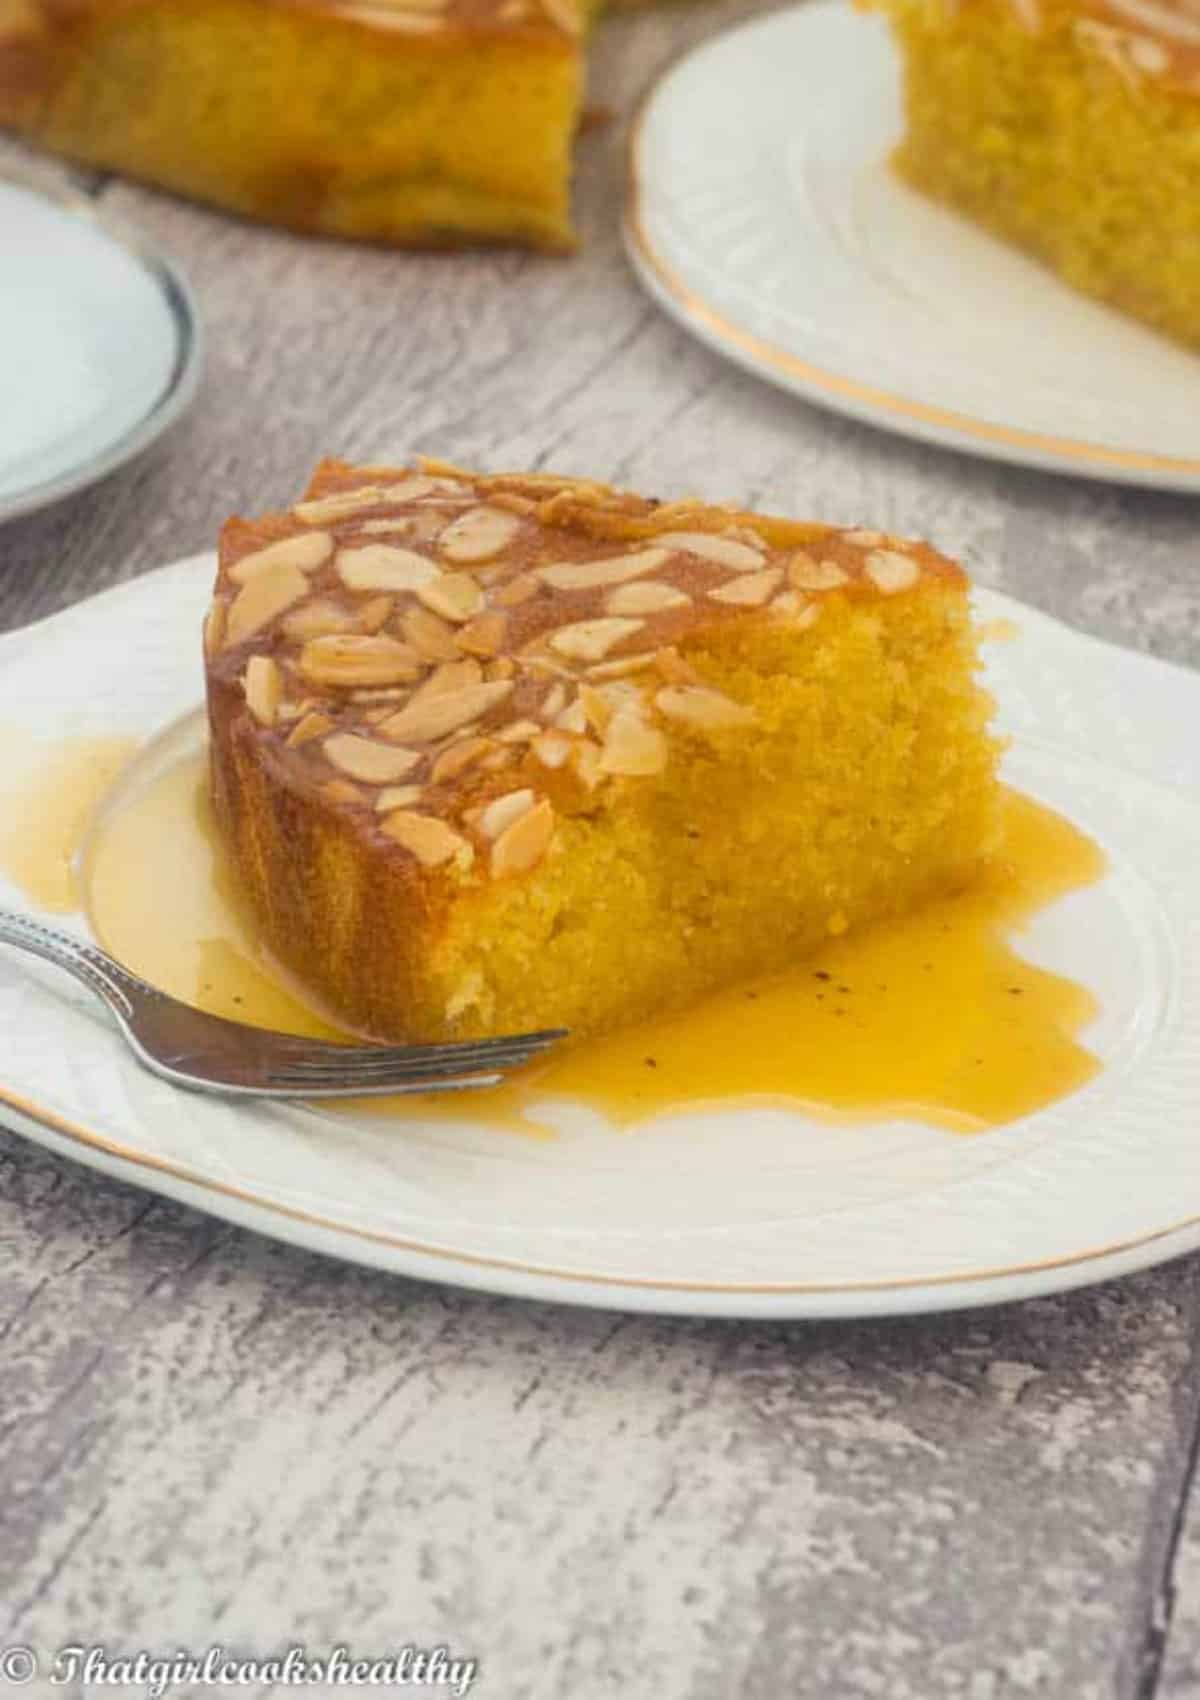 syrup drizzled onto the cake